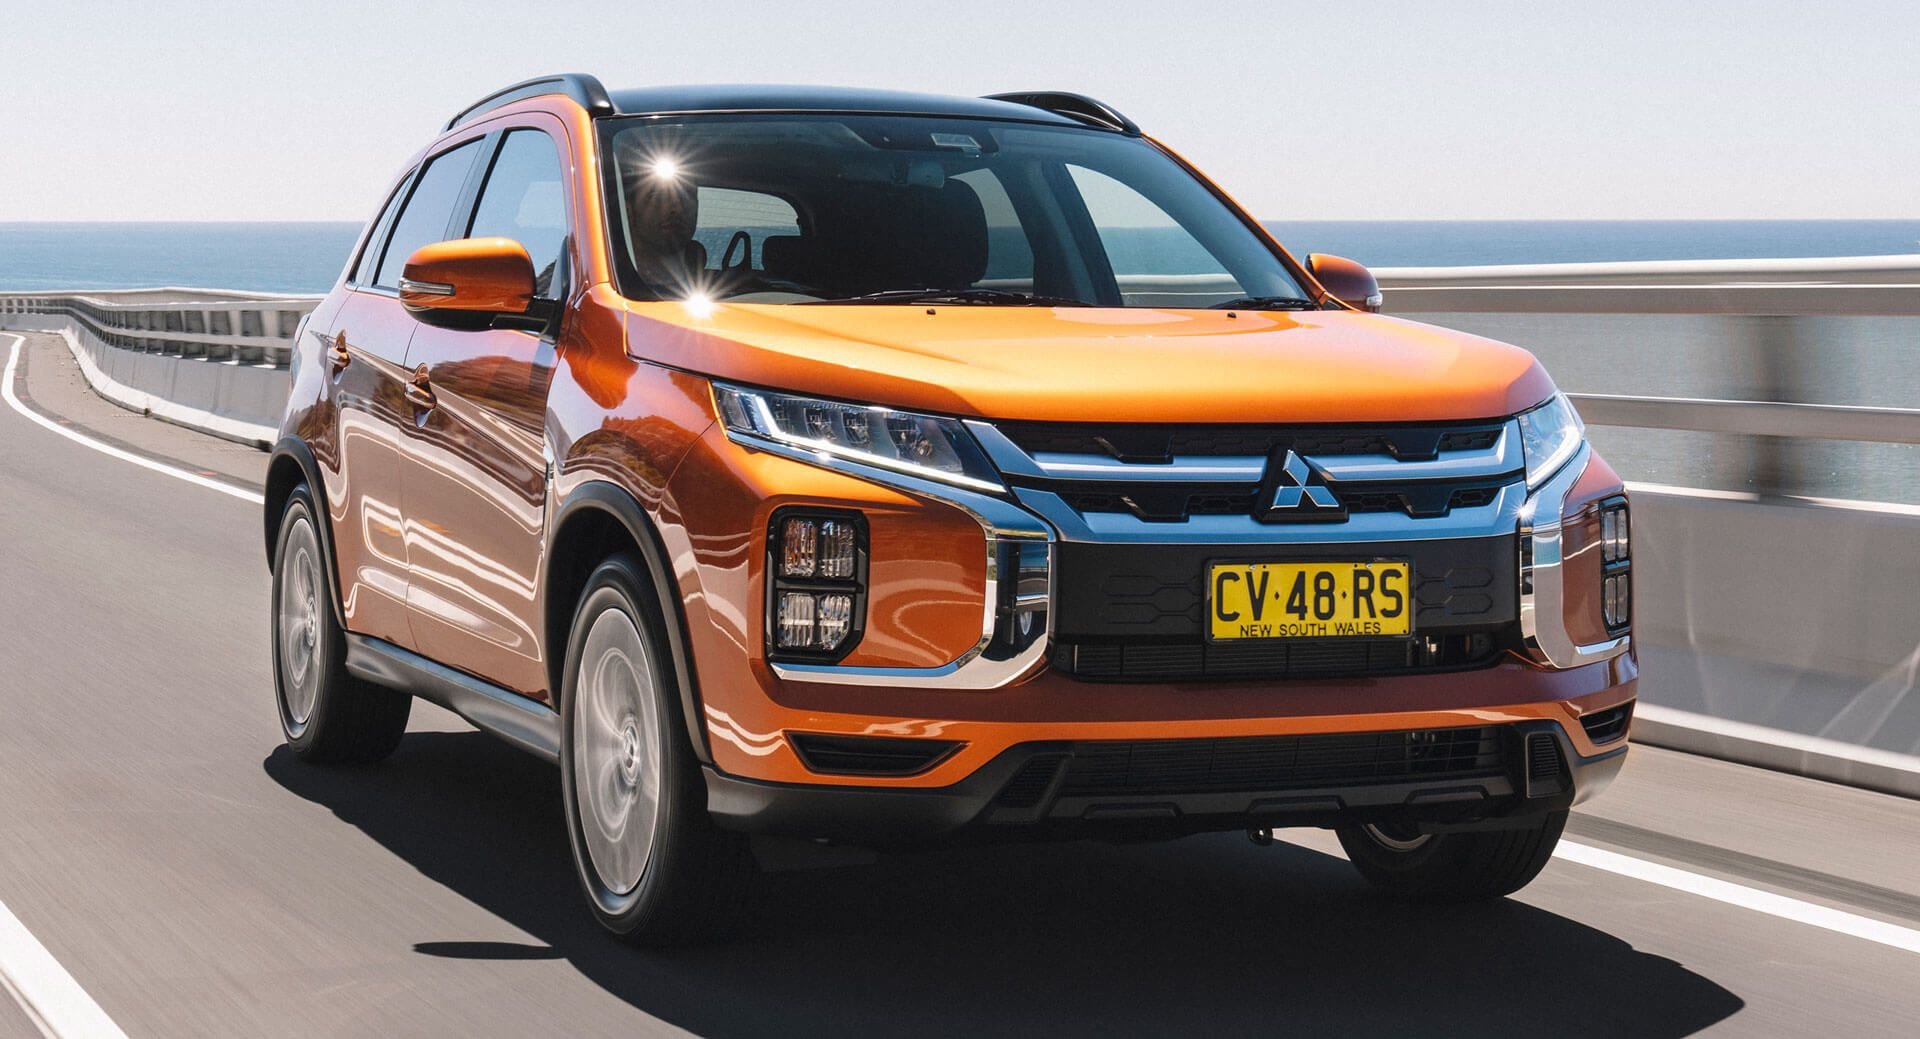 2020 Mitsubishi Asx Gets 24 990 Starting Price In Australia Mitsubishi Name Plate Australia